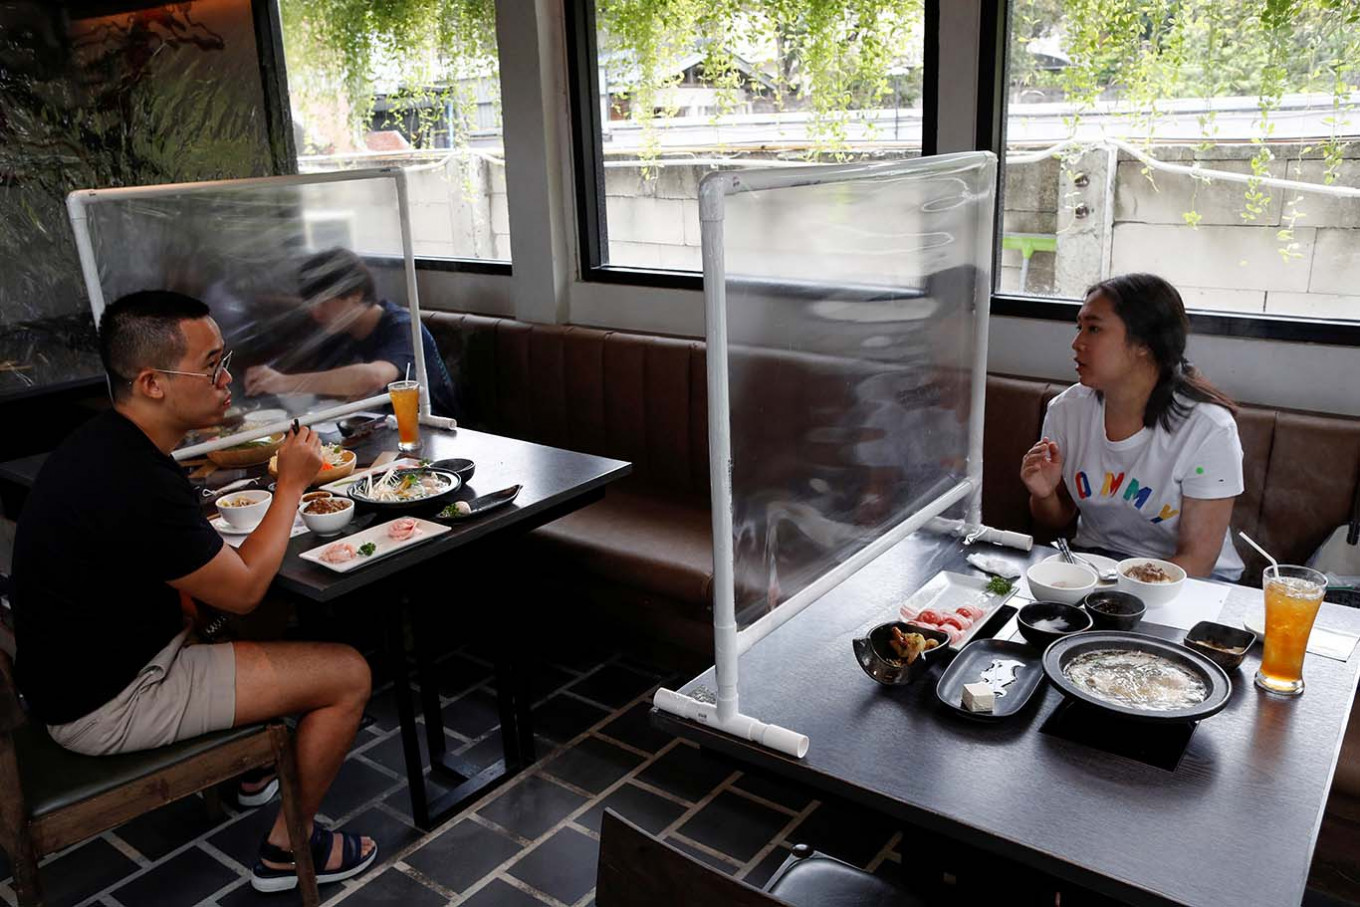 Bangkok reopens with stylists in scrubs, plastic screens between diners